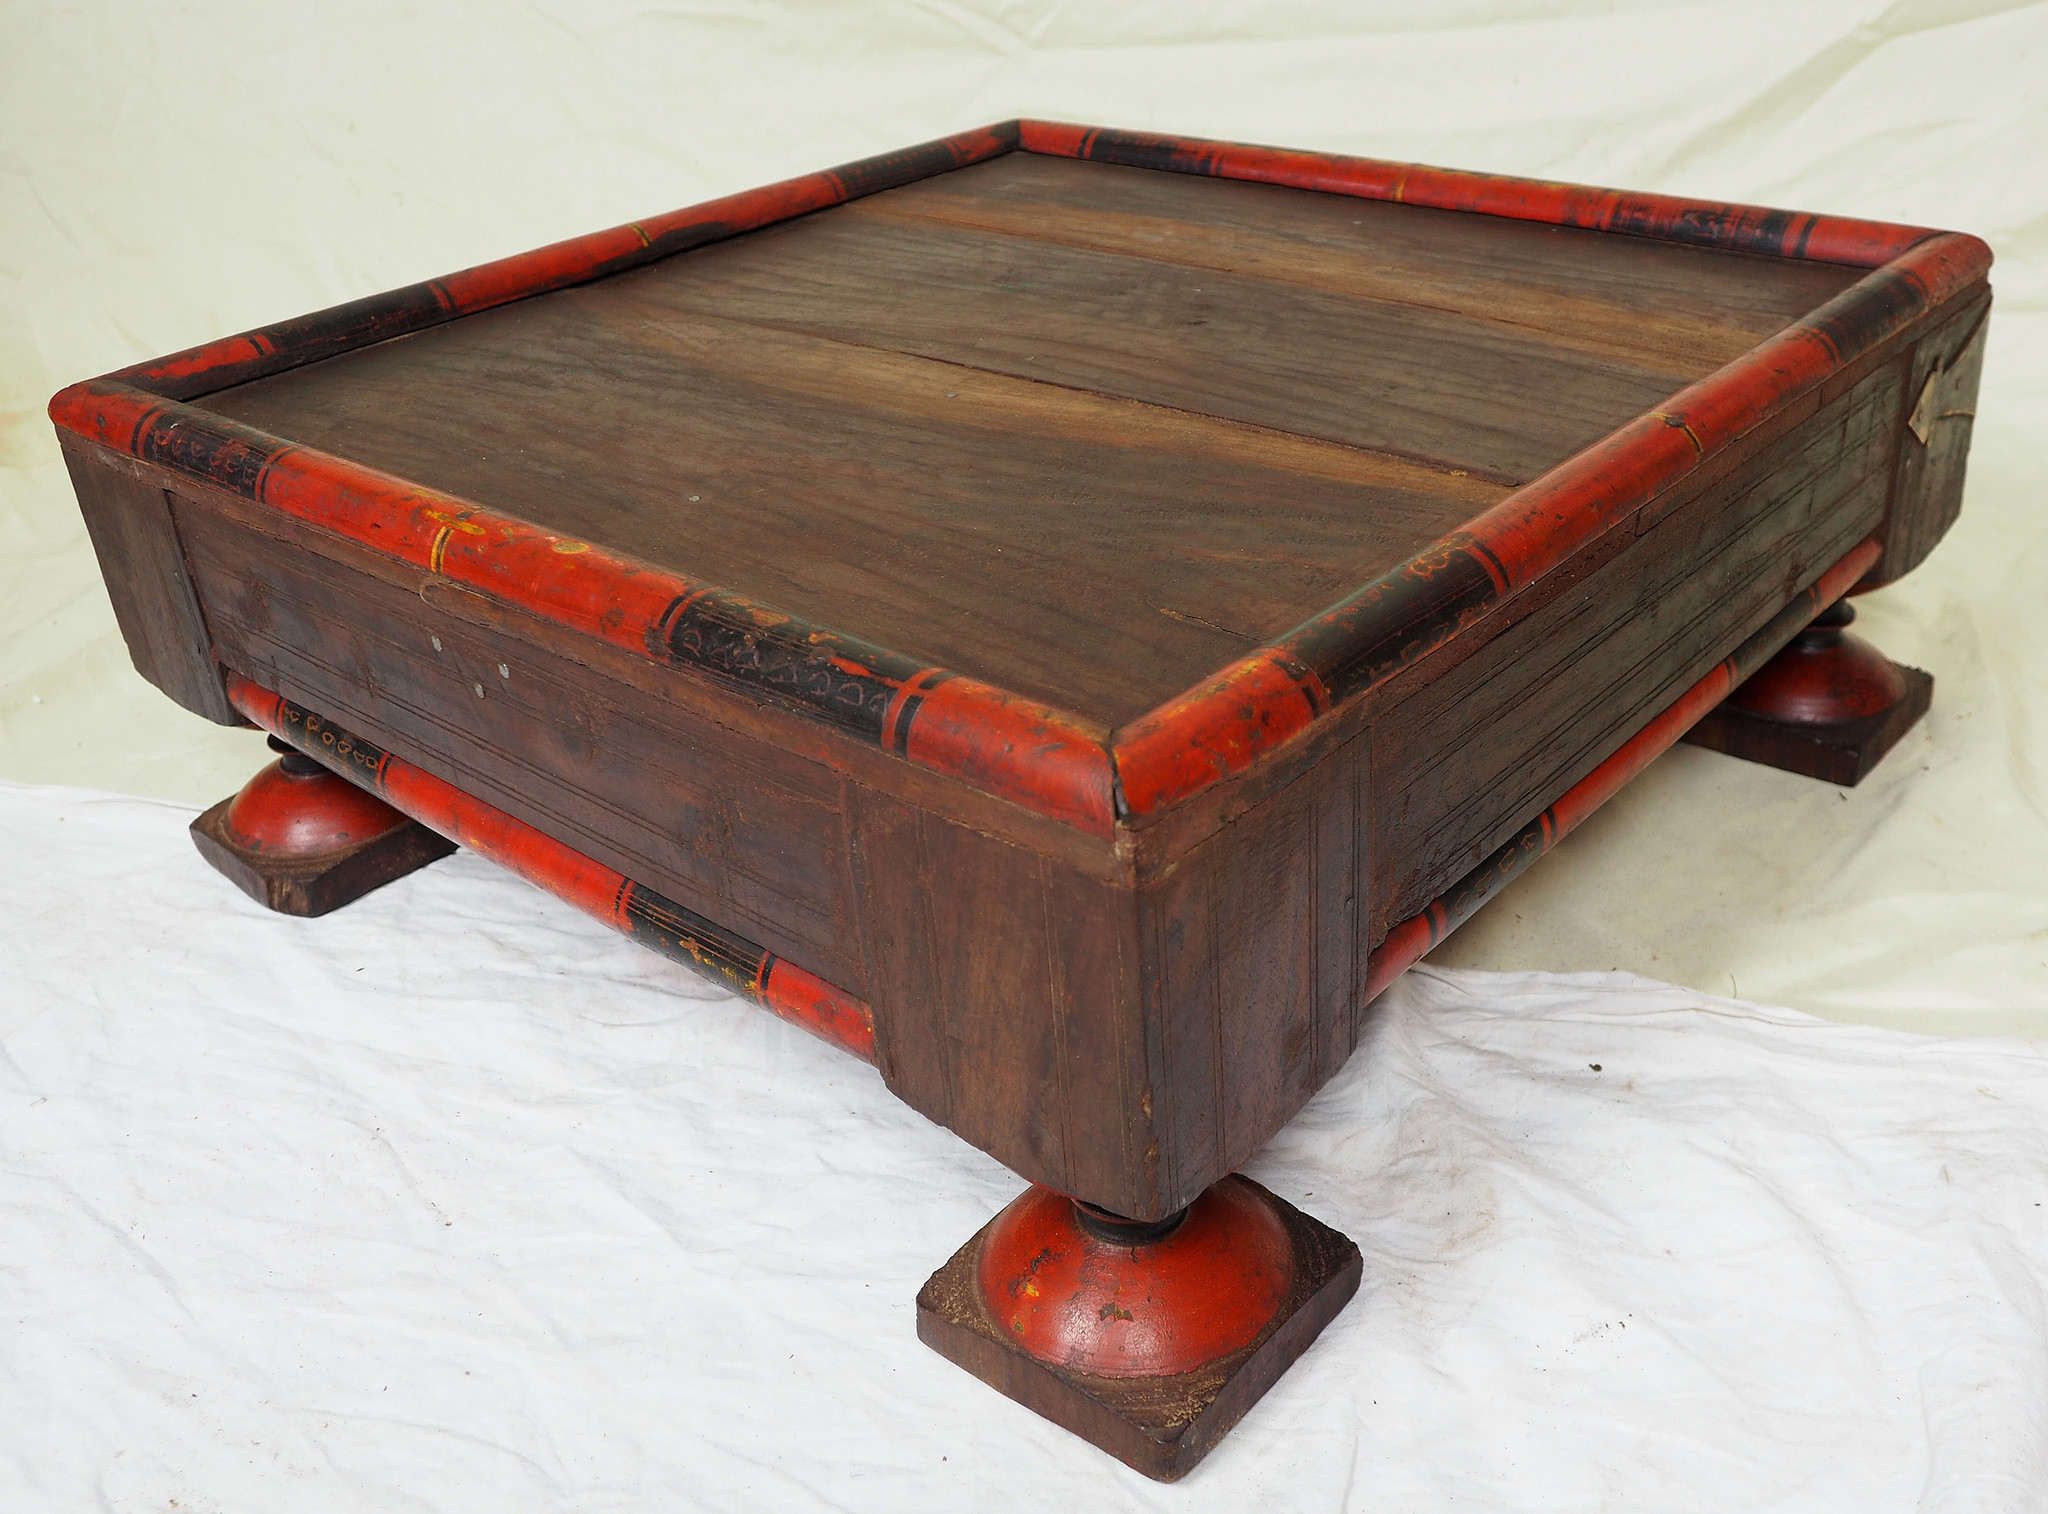 55x55 cm Very rare Antique solid wood orient tea table sidtable from Afghanistan Pakistan No:21/3